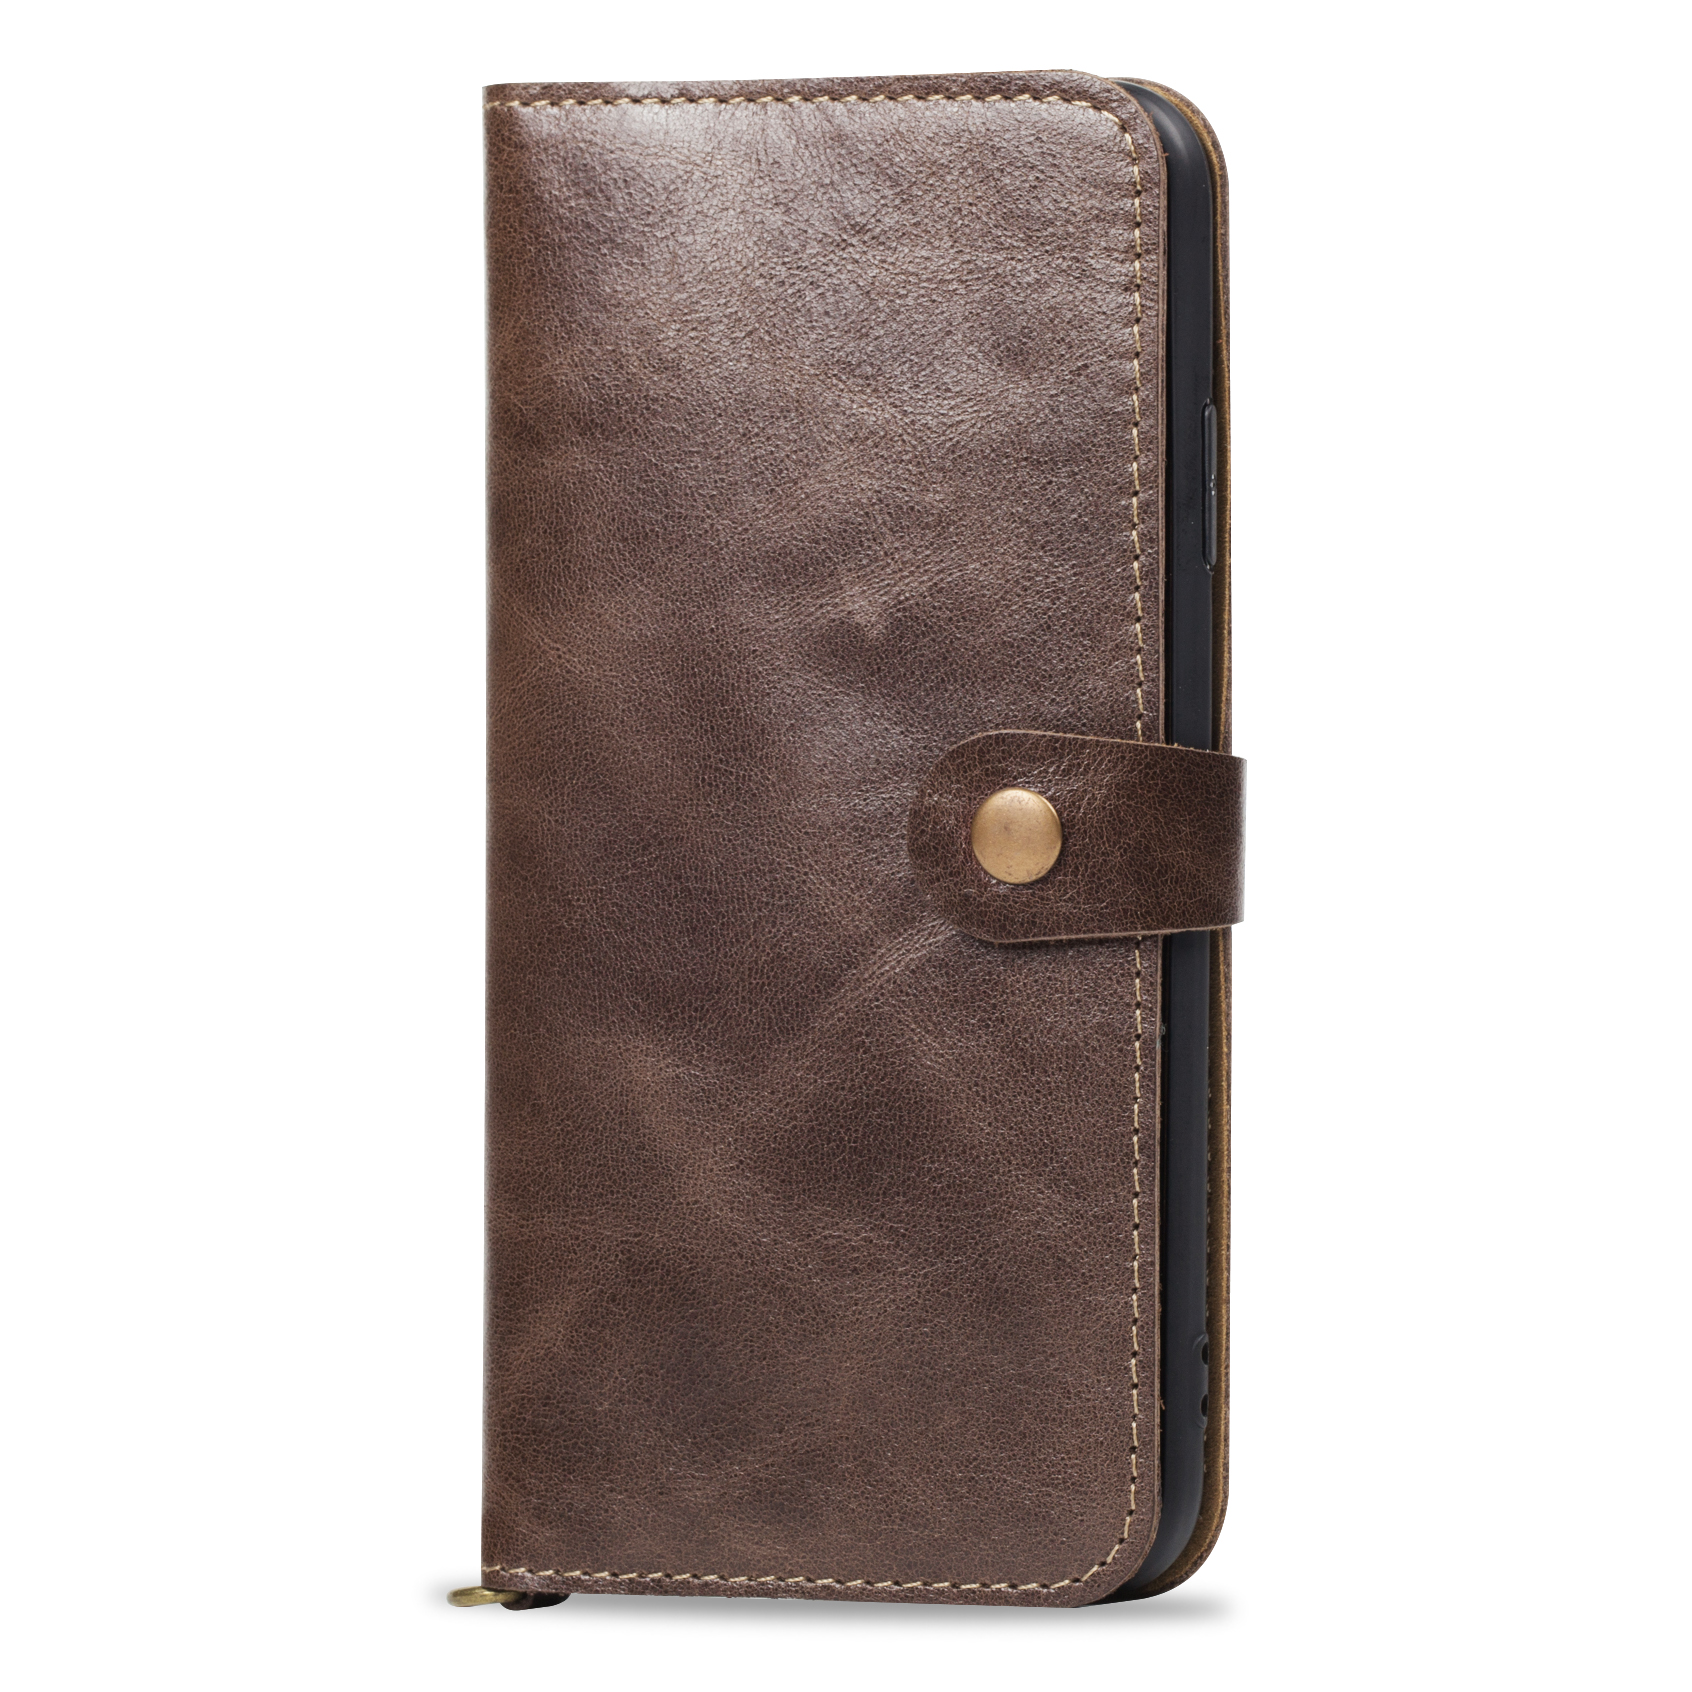 YXAYN 100% Leather Luxurious Comfortable Wallet Flip Phone Case For iPhone 11 PRO MAX 7 8 Plus X XR XS MAX image